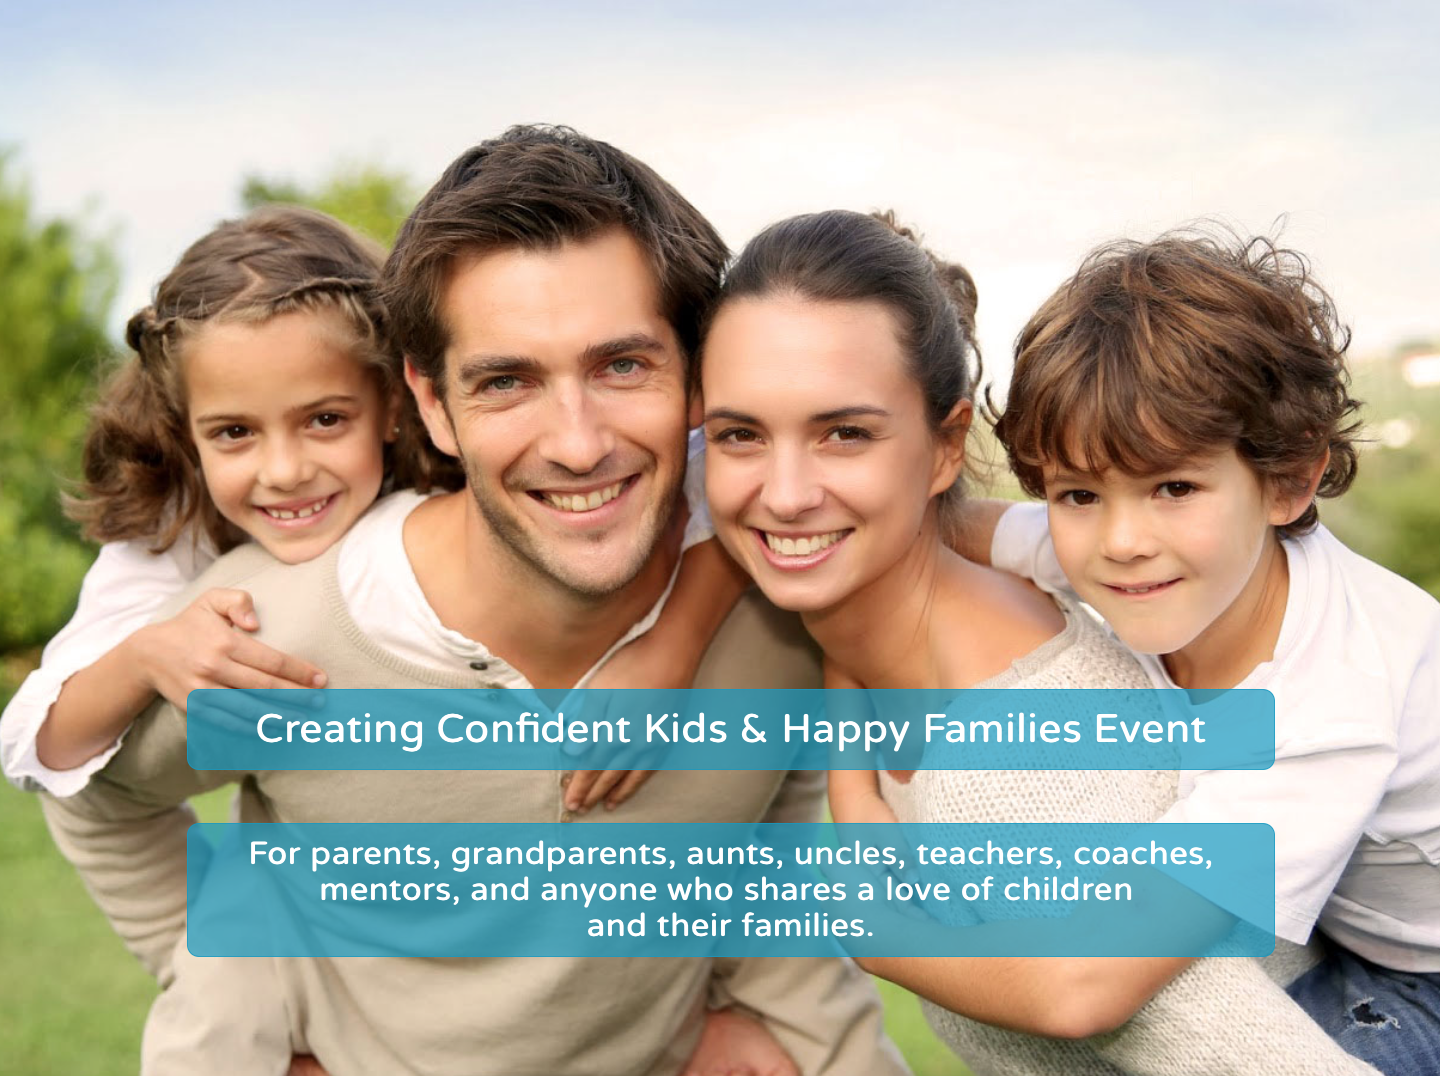 Creating Confident Kids & Happy Families Event